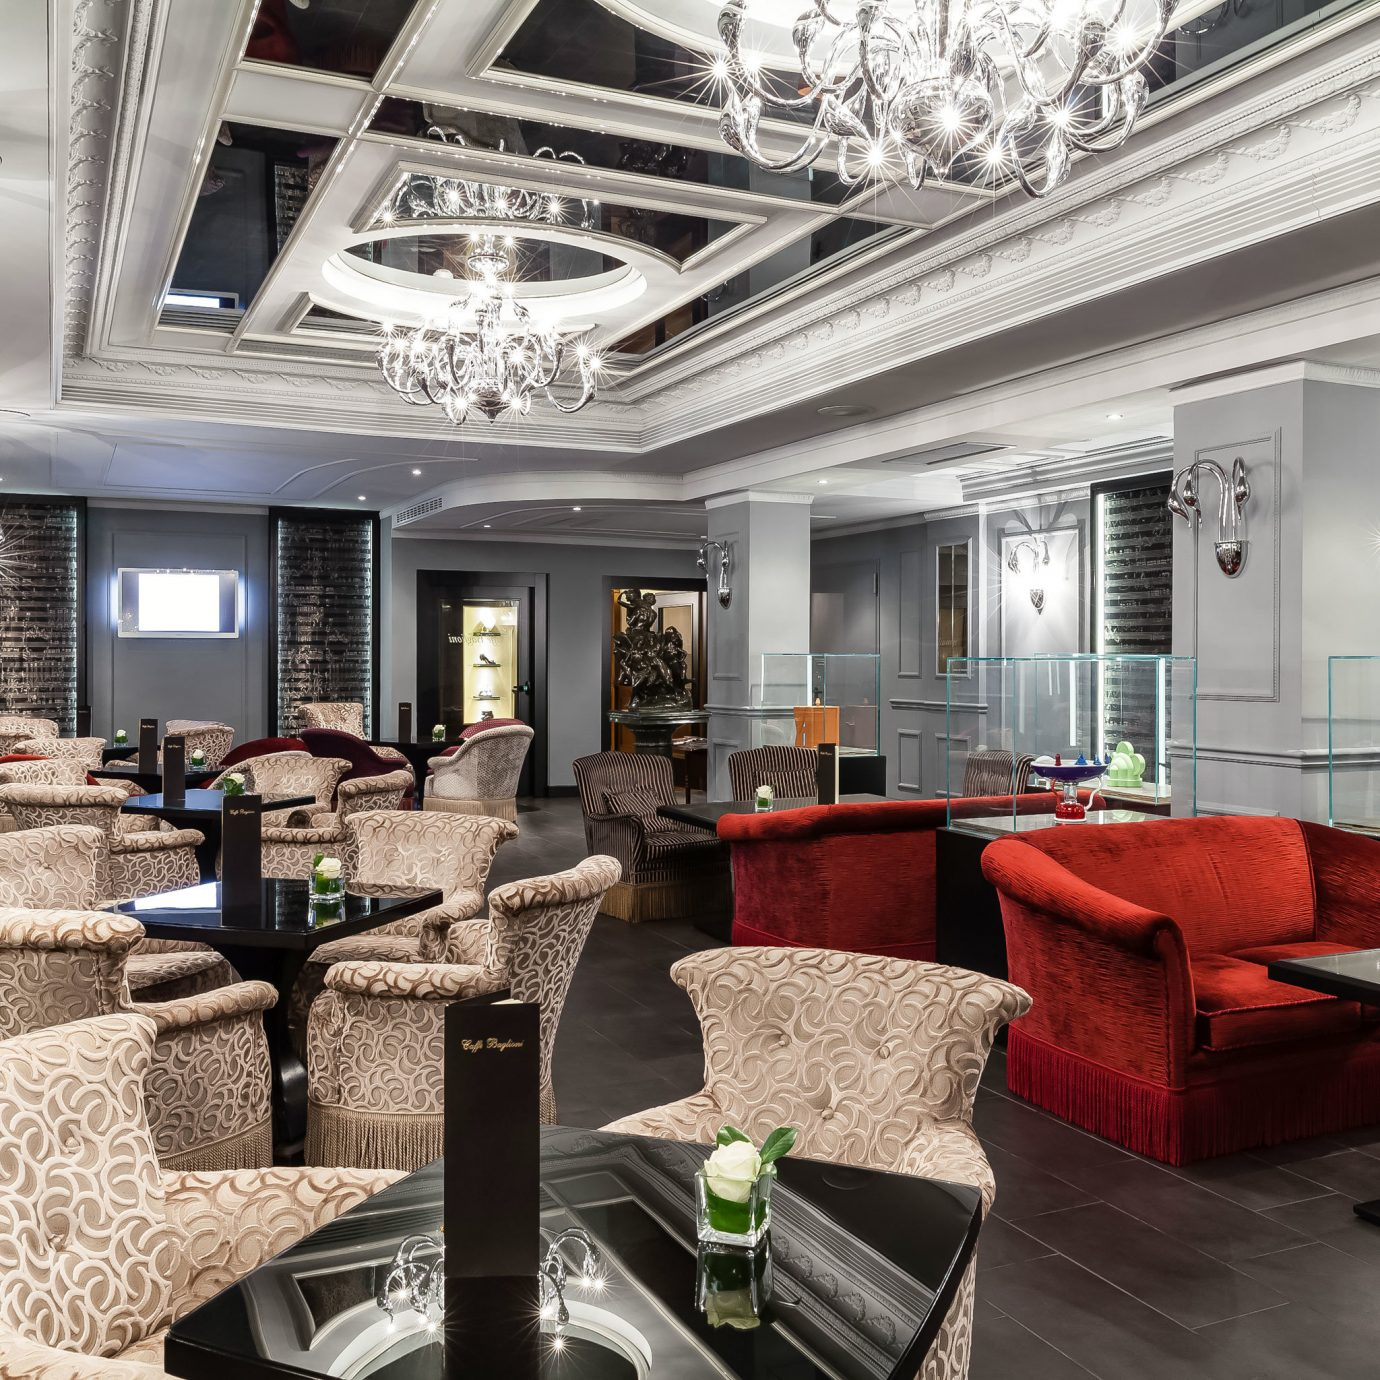 Boutique City Classic Dining Drink Eat Elegant property living room Lobby condominium home mansion